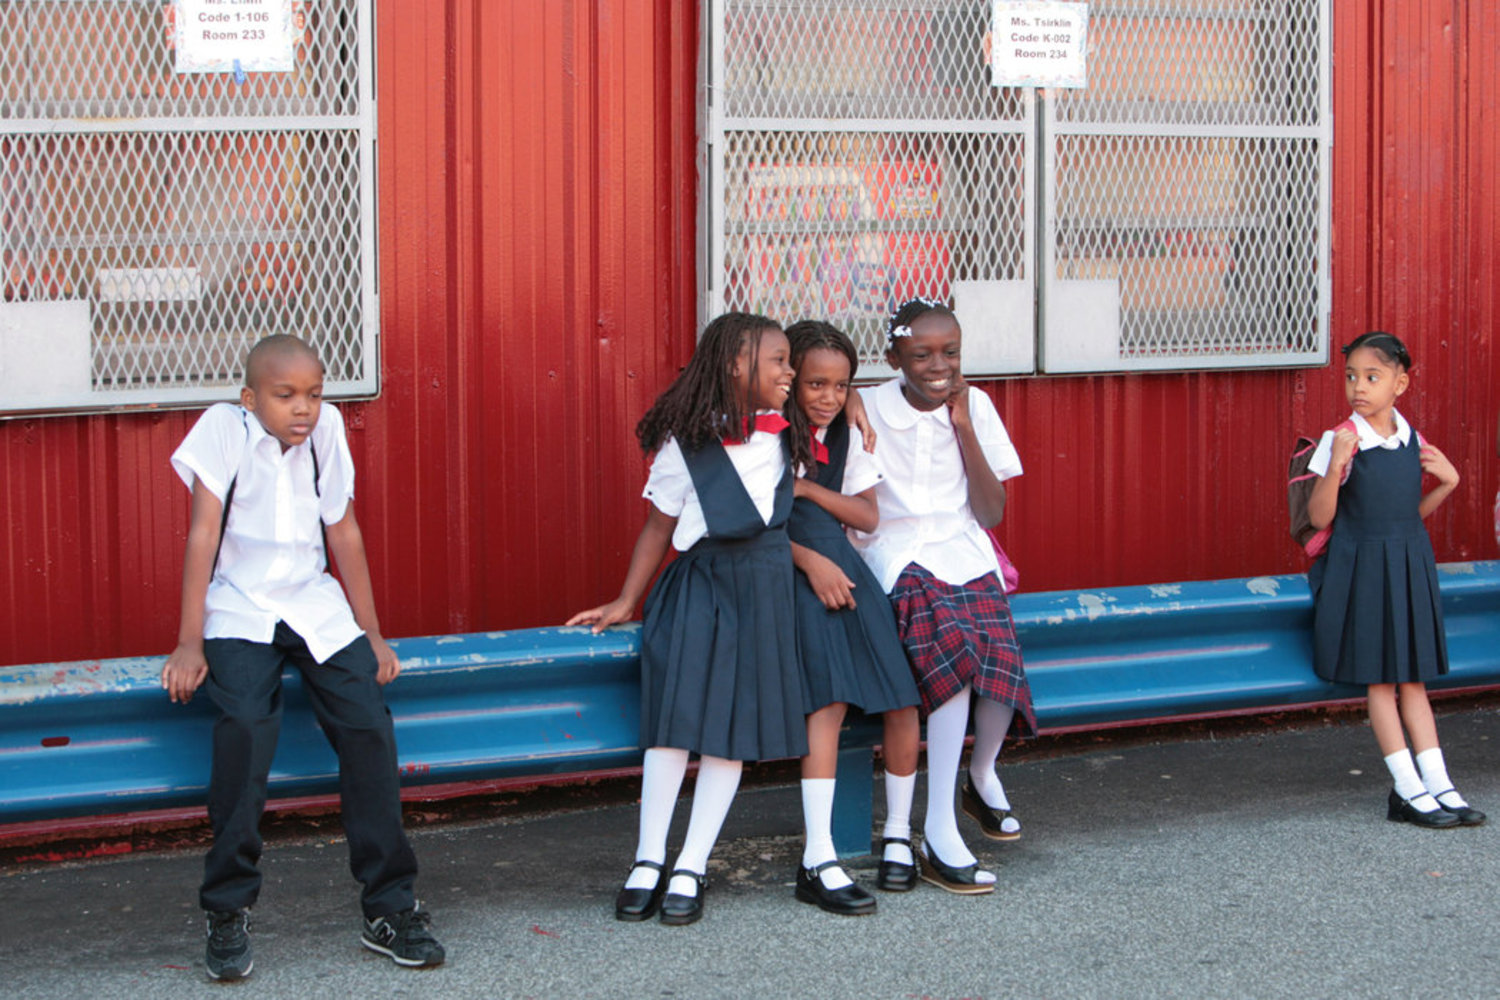 2000s - September 2007: Children waiting for their classes to begin at Public School 53 in the Bronx.